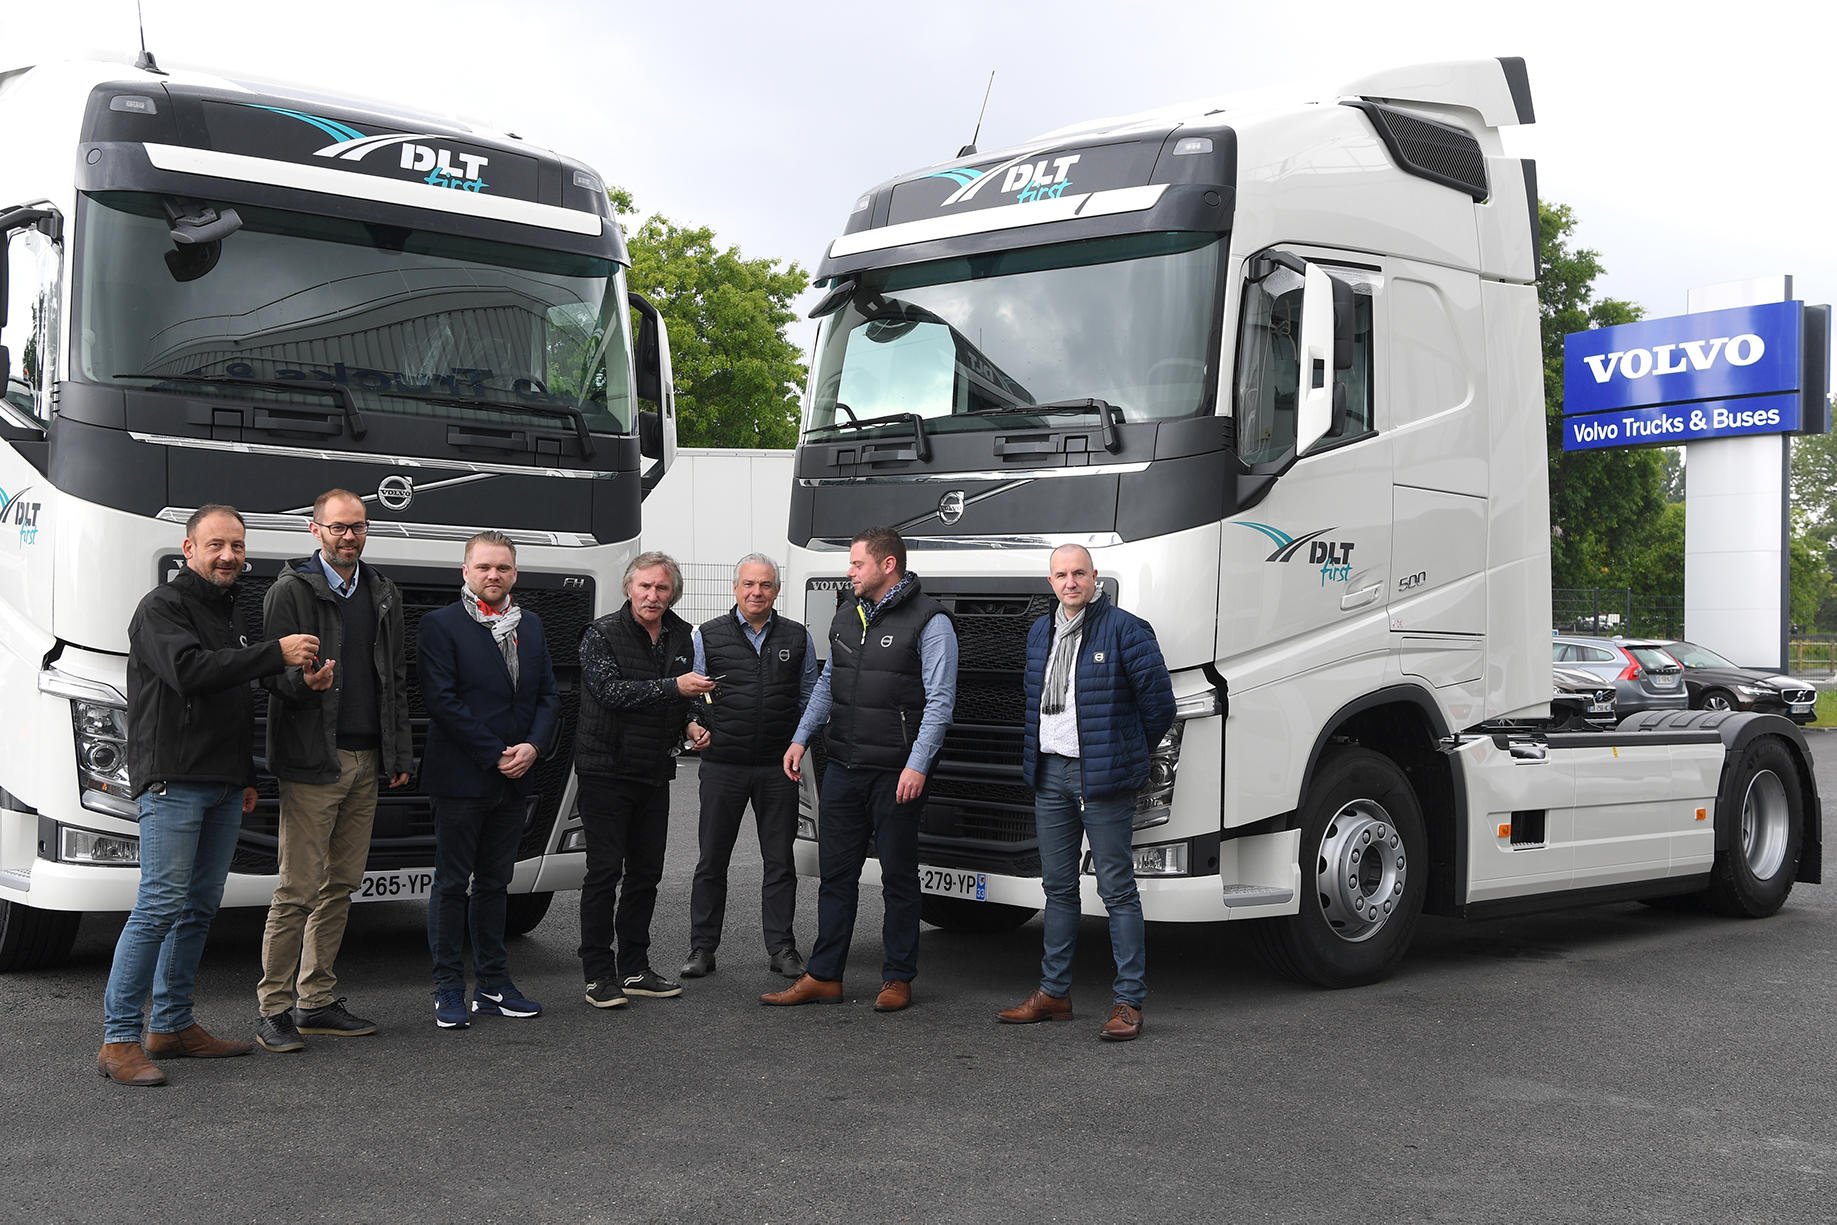 DLT First et Volvo